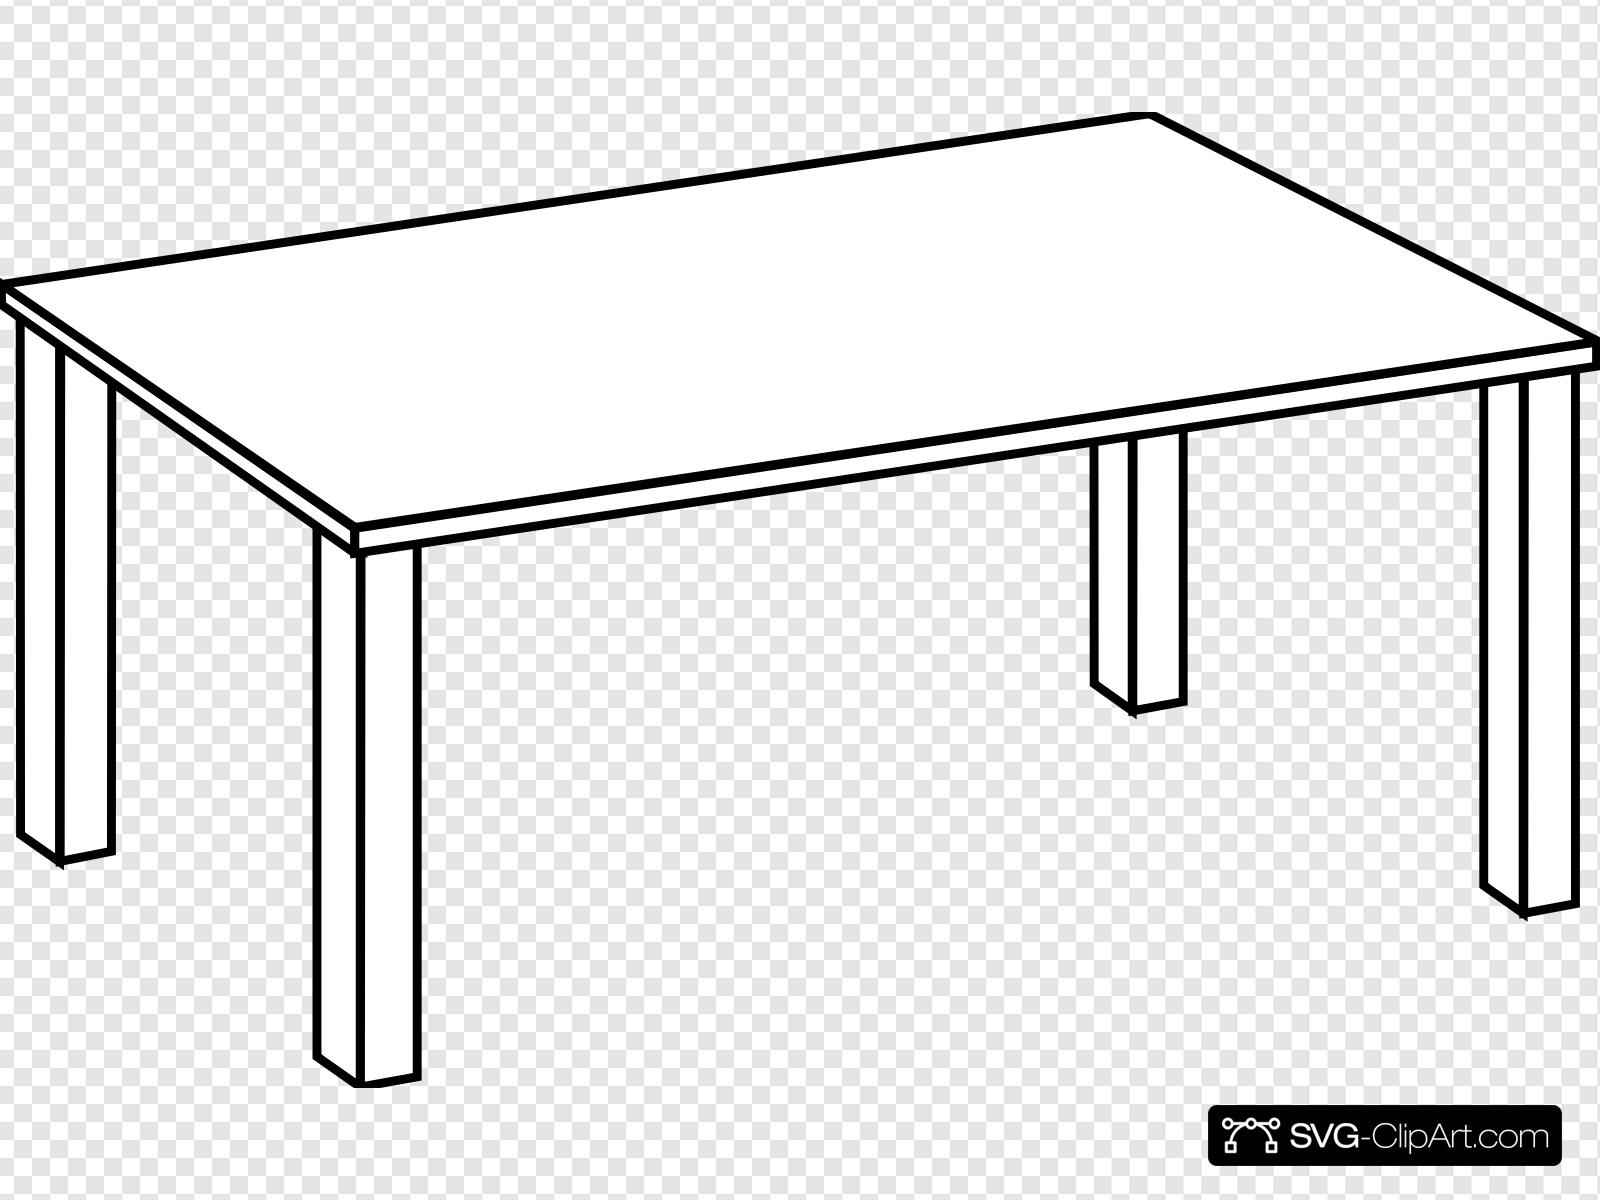 Table Line Art Clip art, Icon and SVG.